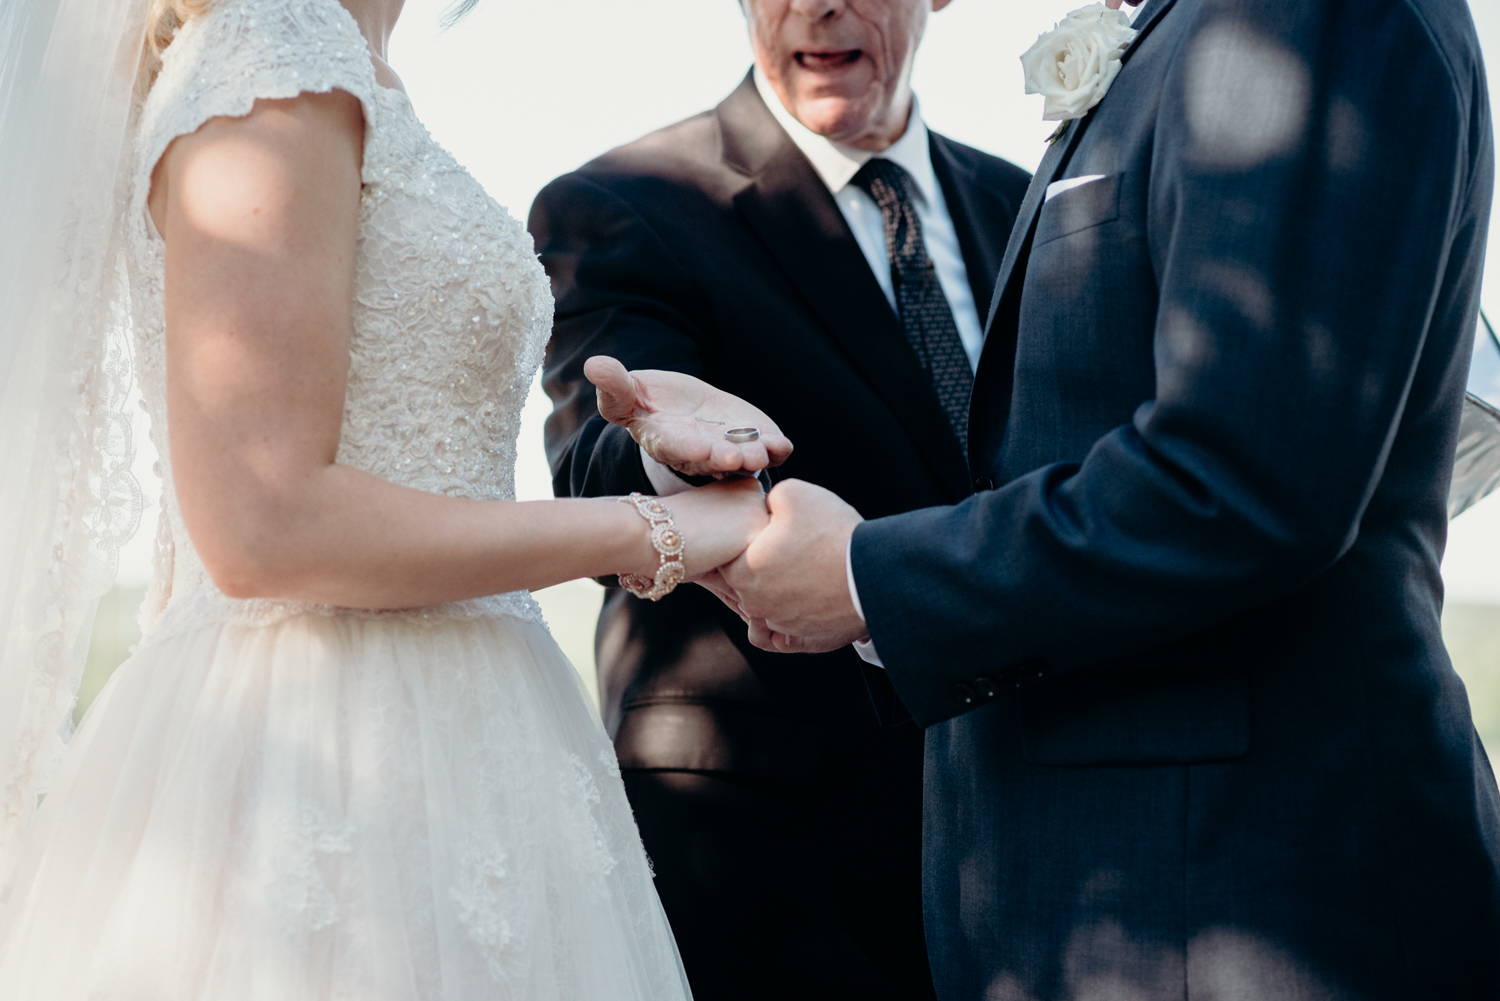 An officiant hands the bride and groom their rings during a ceremony at Lansdowne Resort.